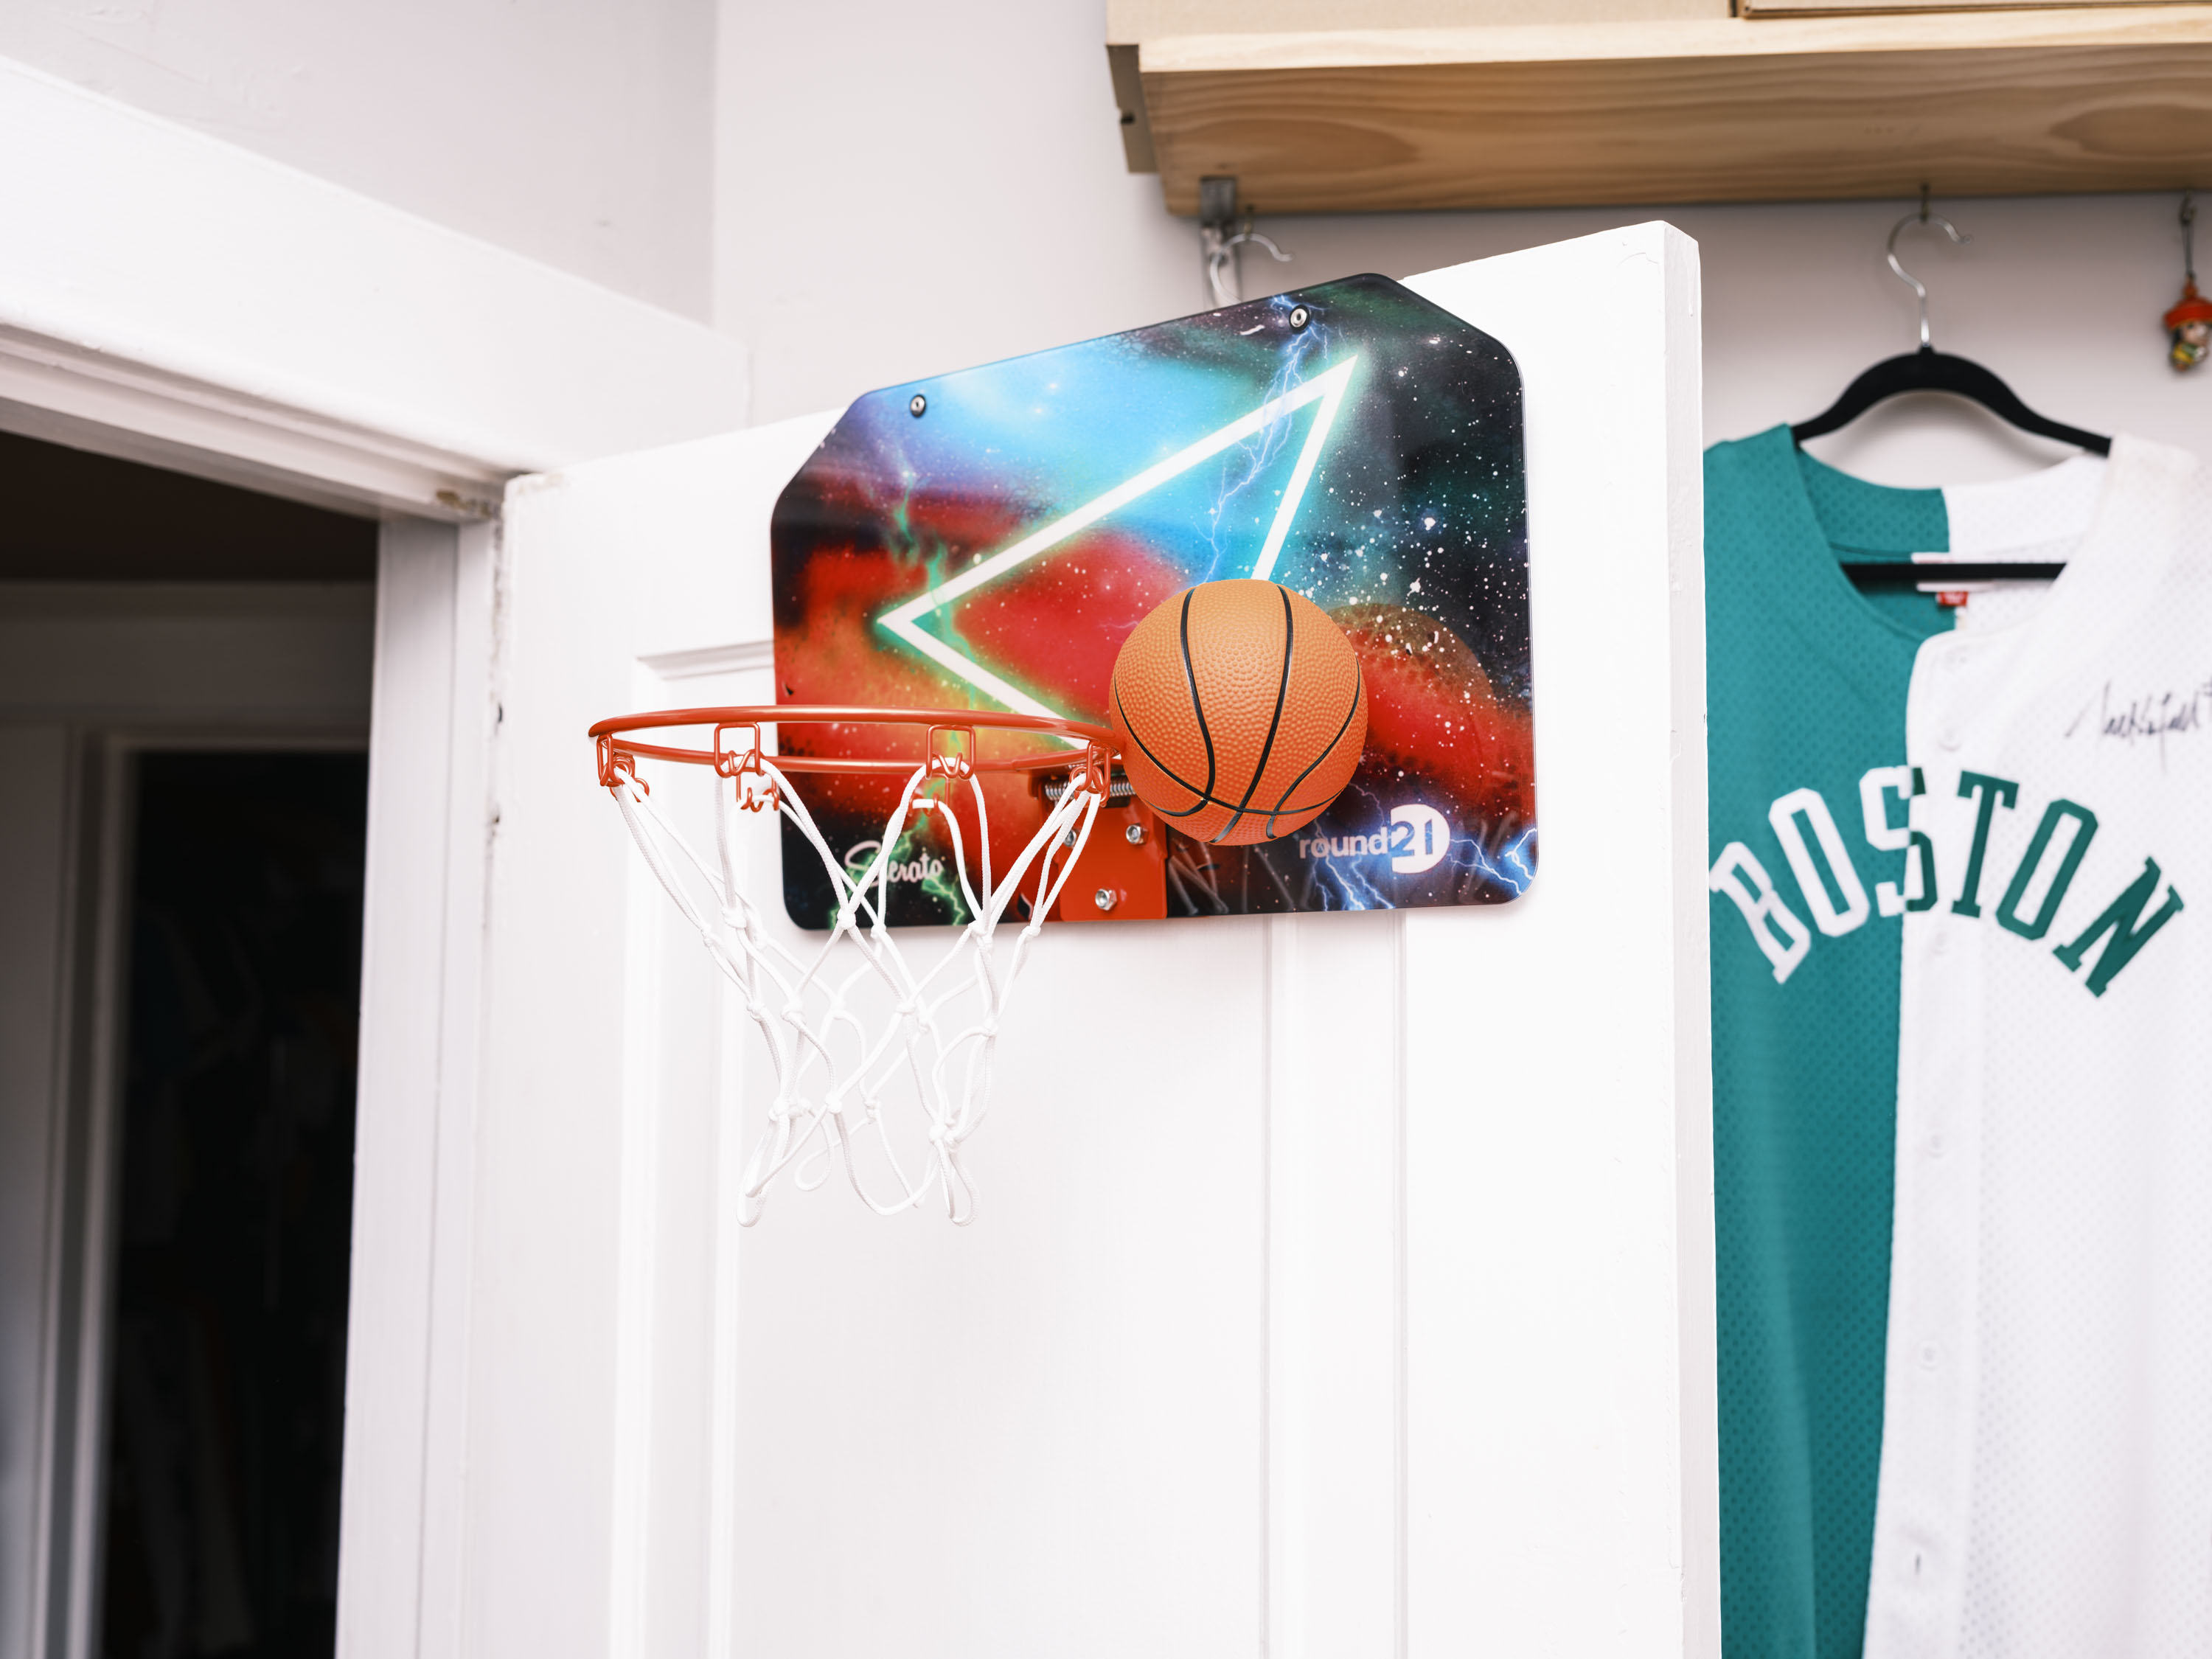 """This backboard comes alive through Sierato's classic """"galaxy"""" design. The backboard includes custom work for round21 to symbolize the youthful energy and power that fuels our desire to constantly create and express who we are."""